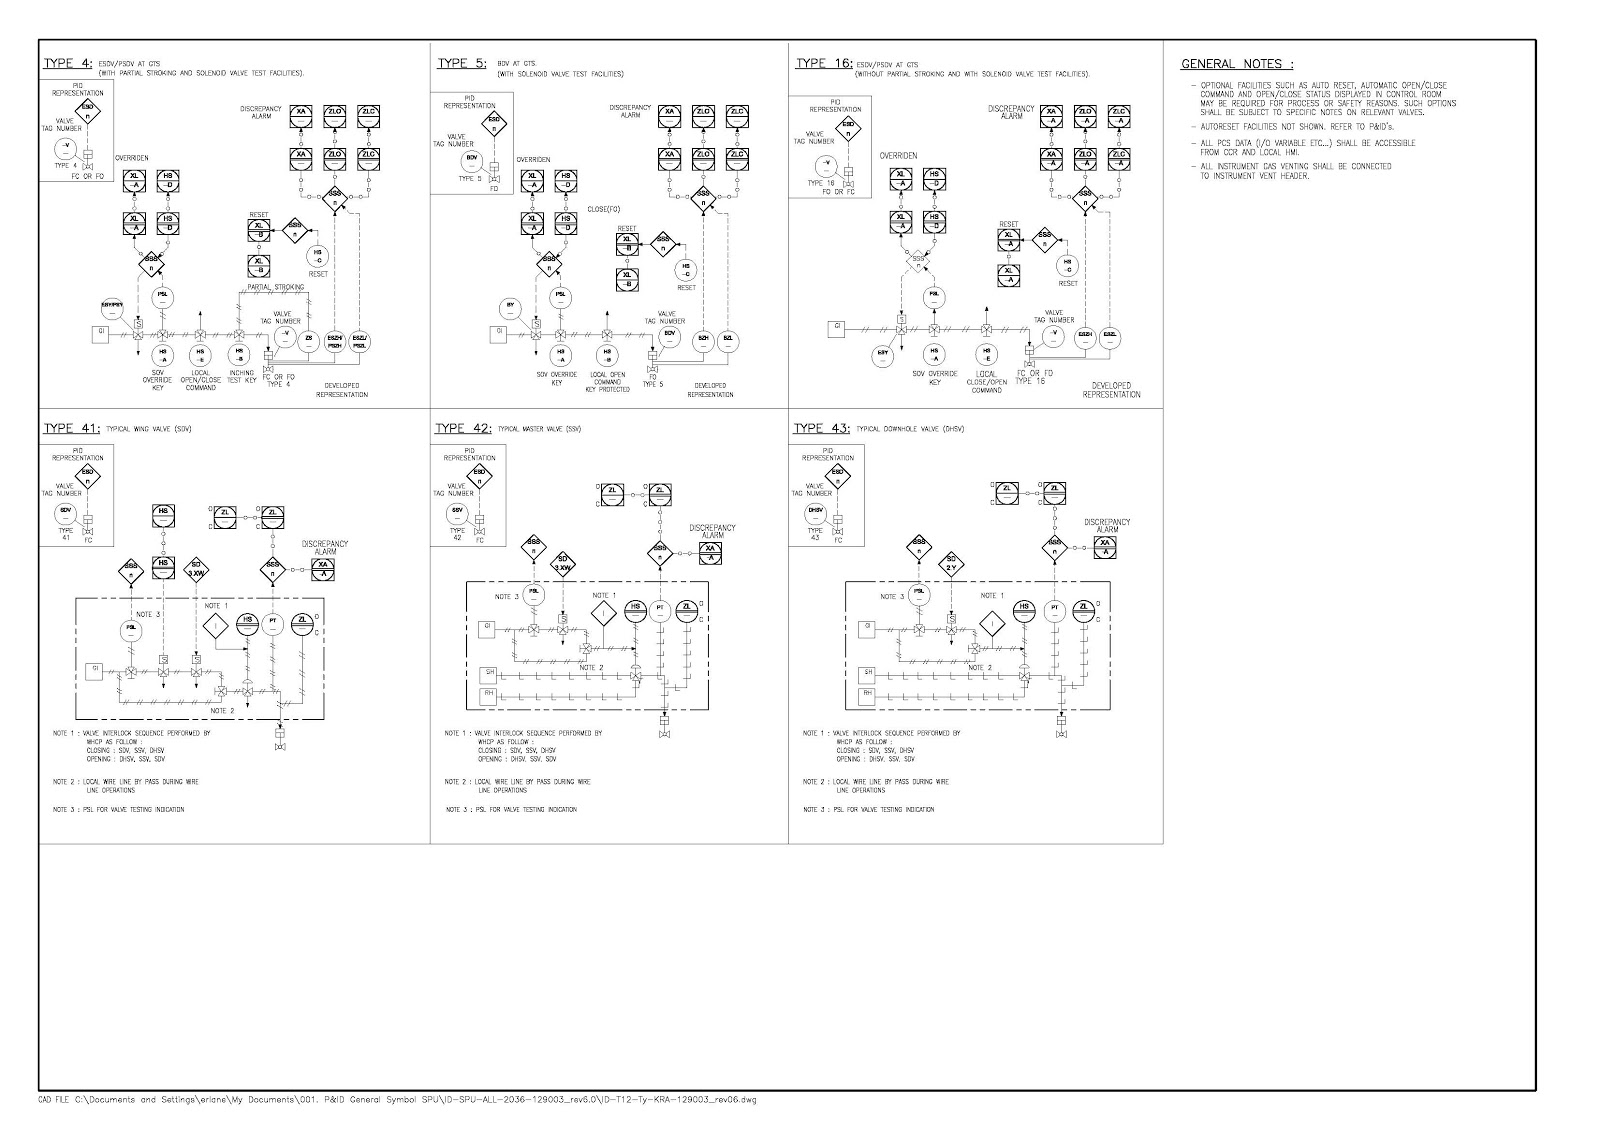 hight resolution of piping instrument diagram symbols piping instrument diagram symbols jpg1600 1131 211 kb